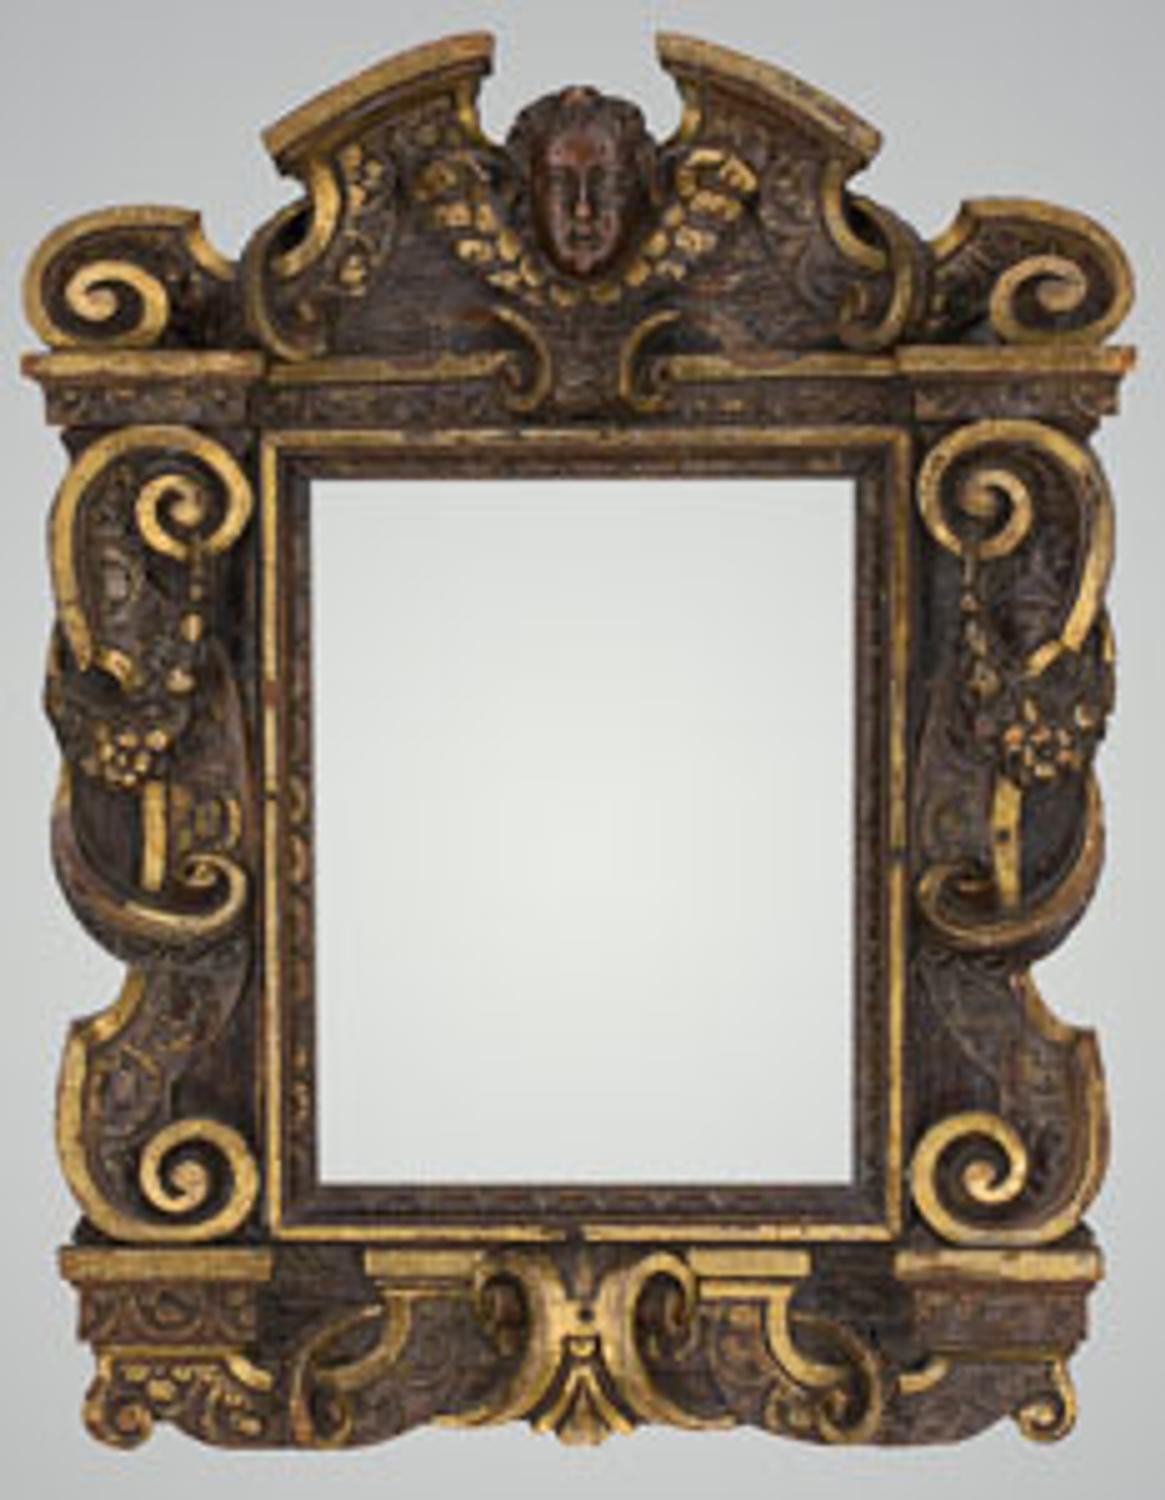 Lowy Frames Brings History of Framing to The Curators Eye ...